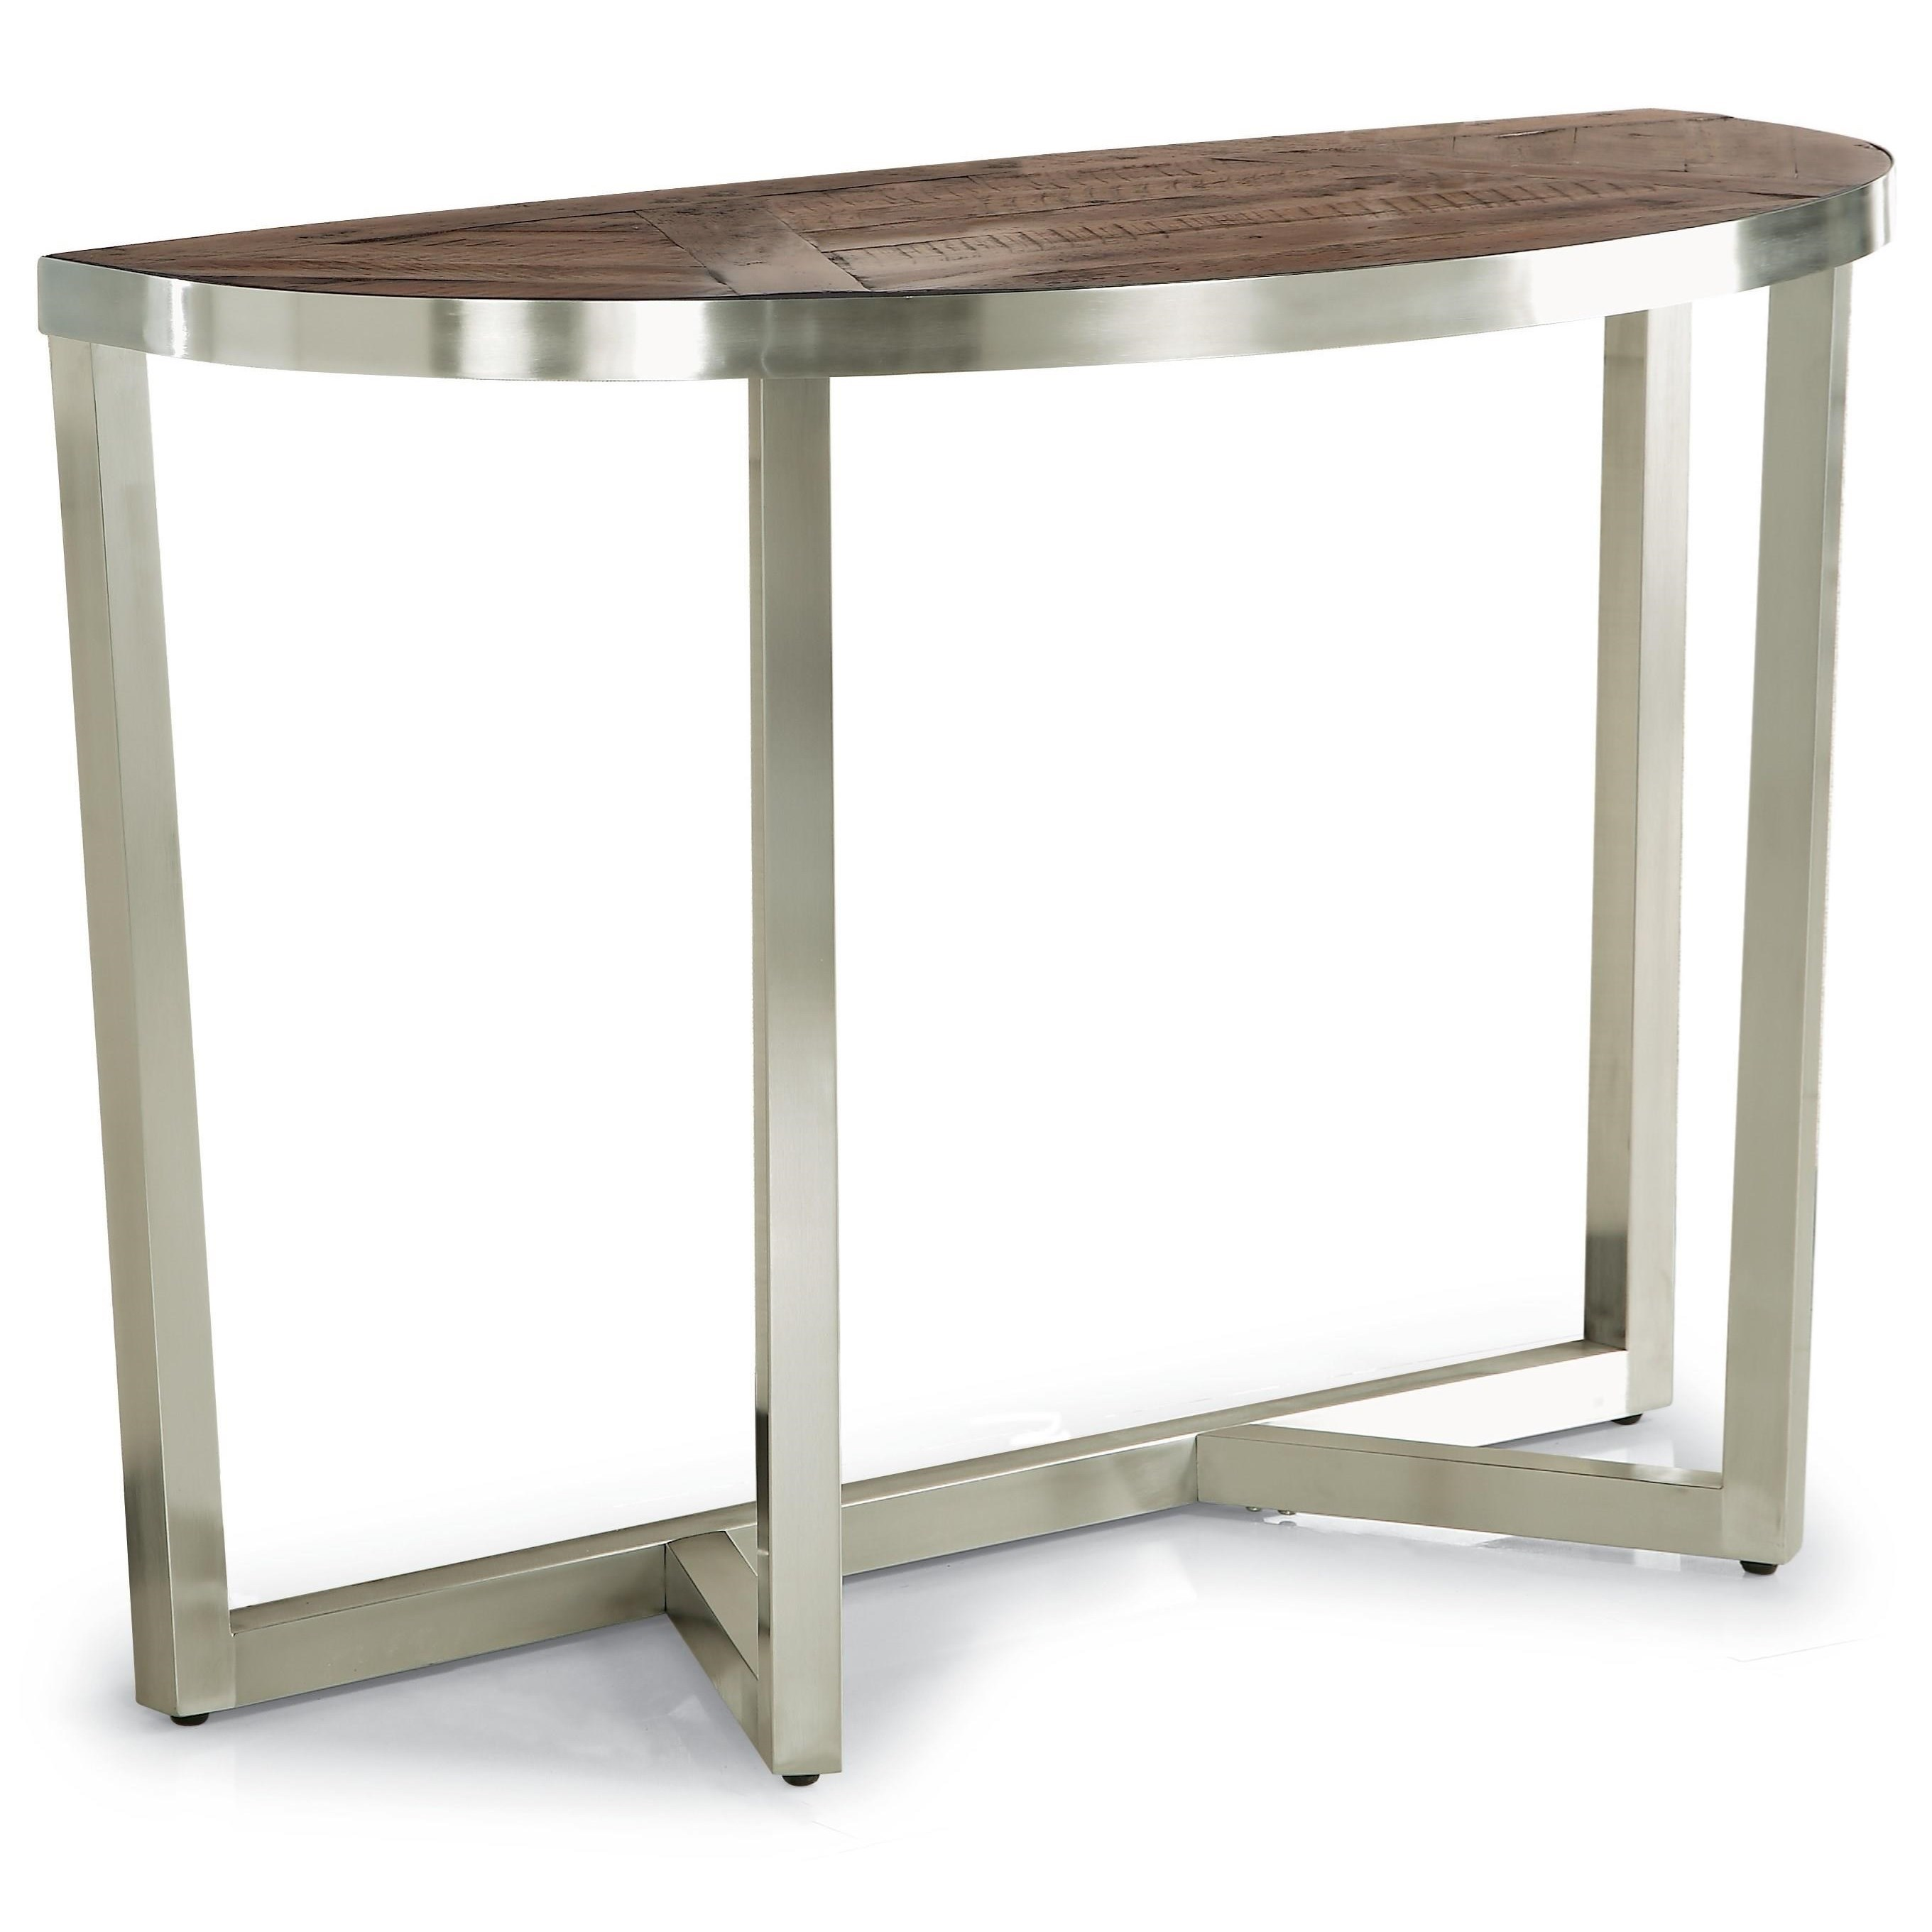 Flexsteel wynwood collection axis w1450 04 contemporary for Sofa table vs console table